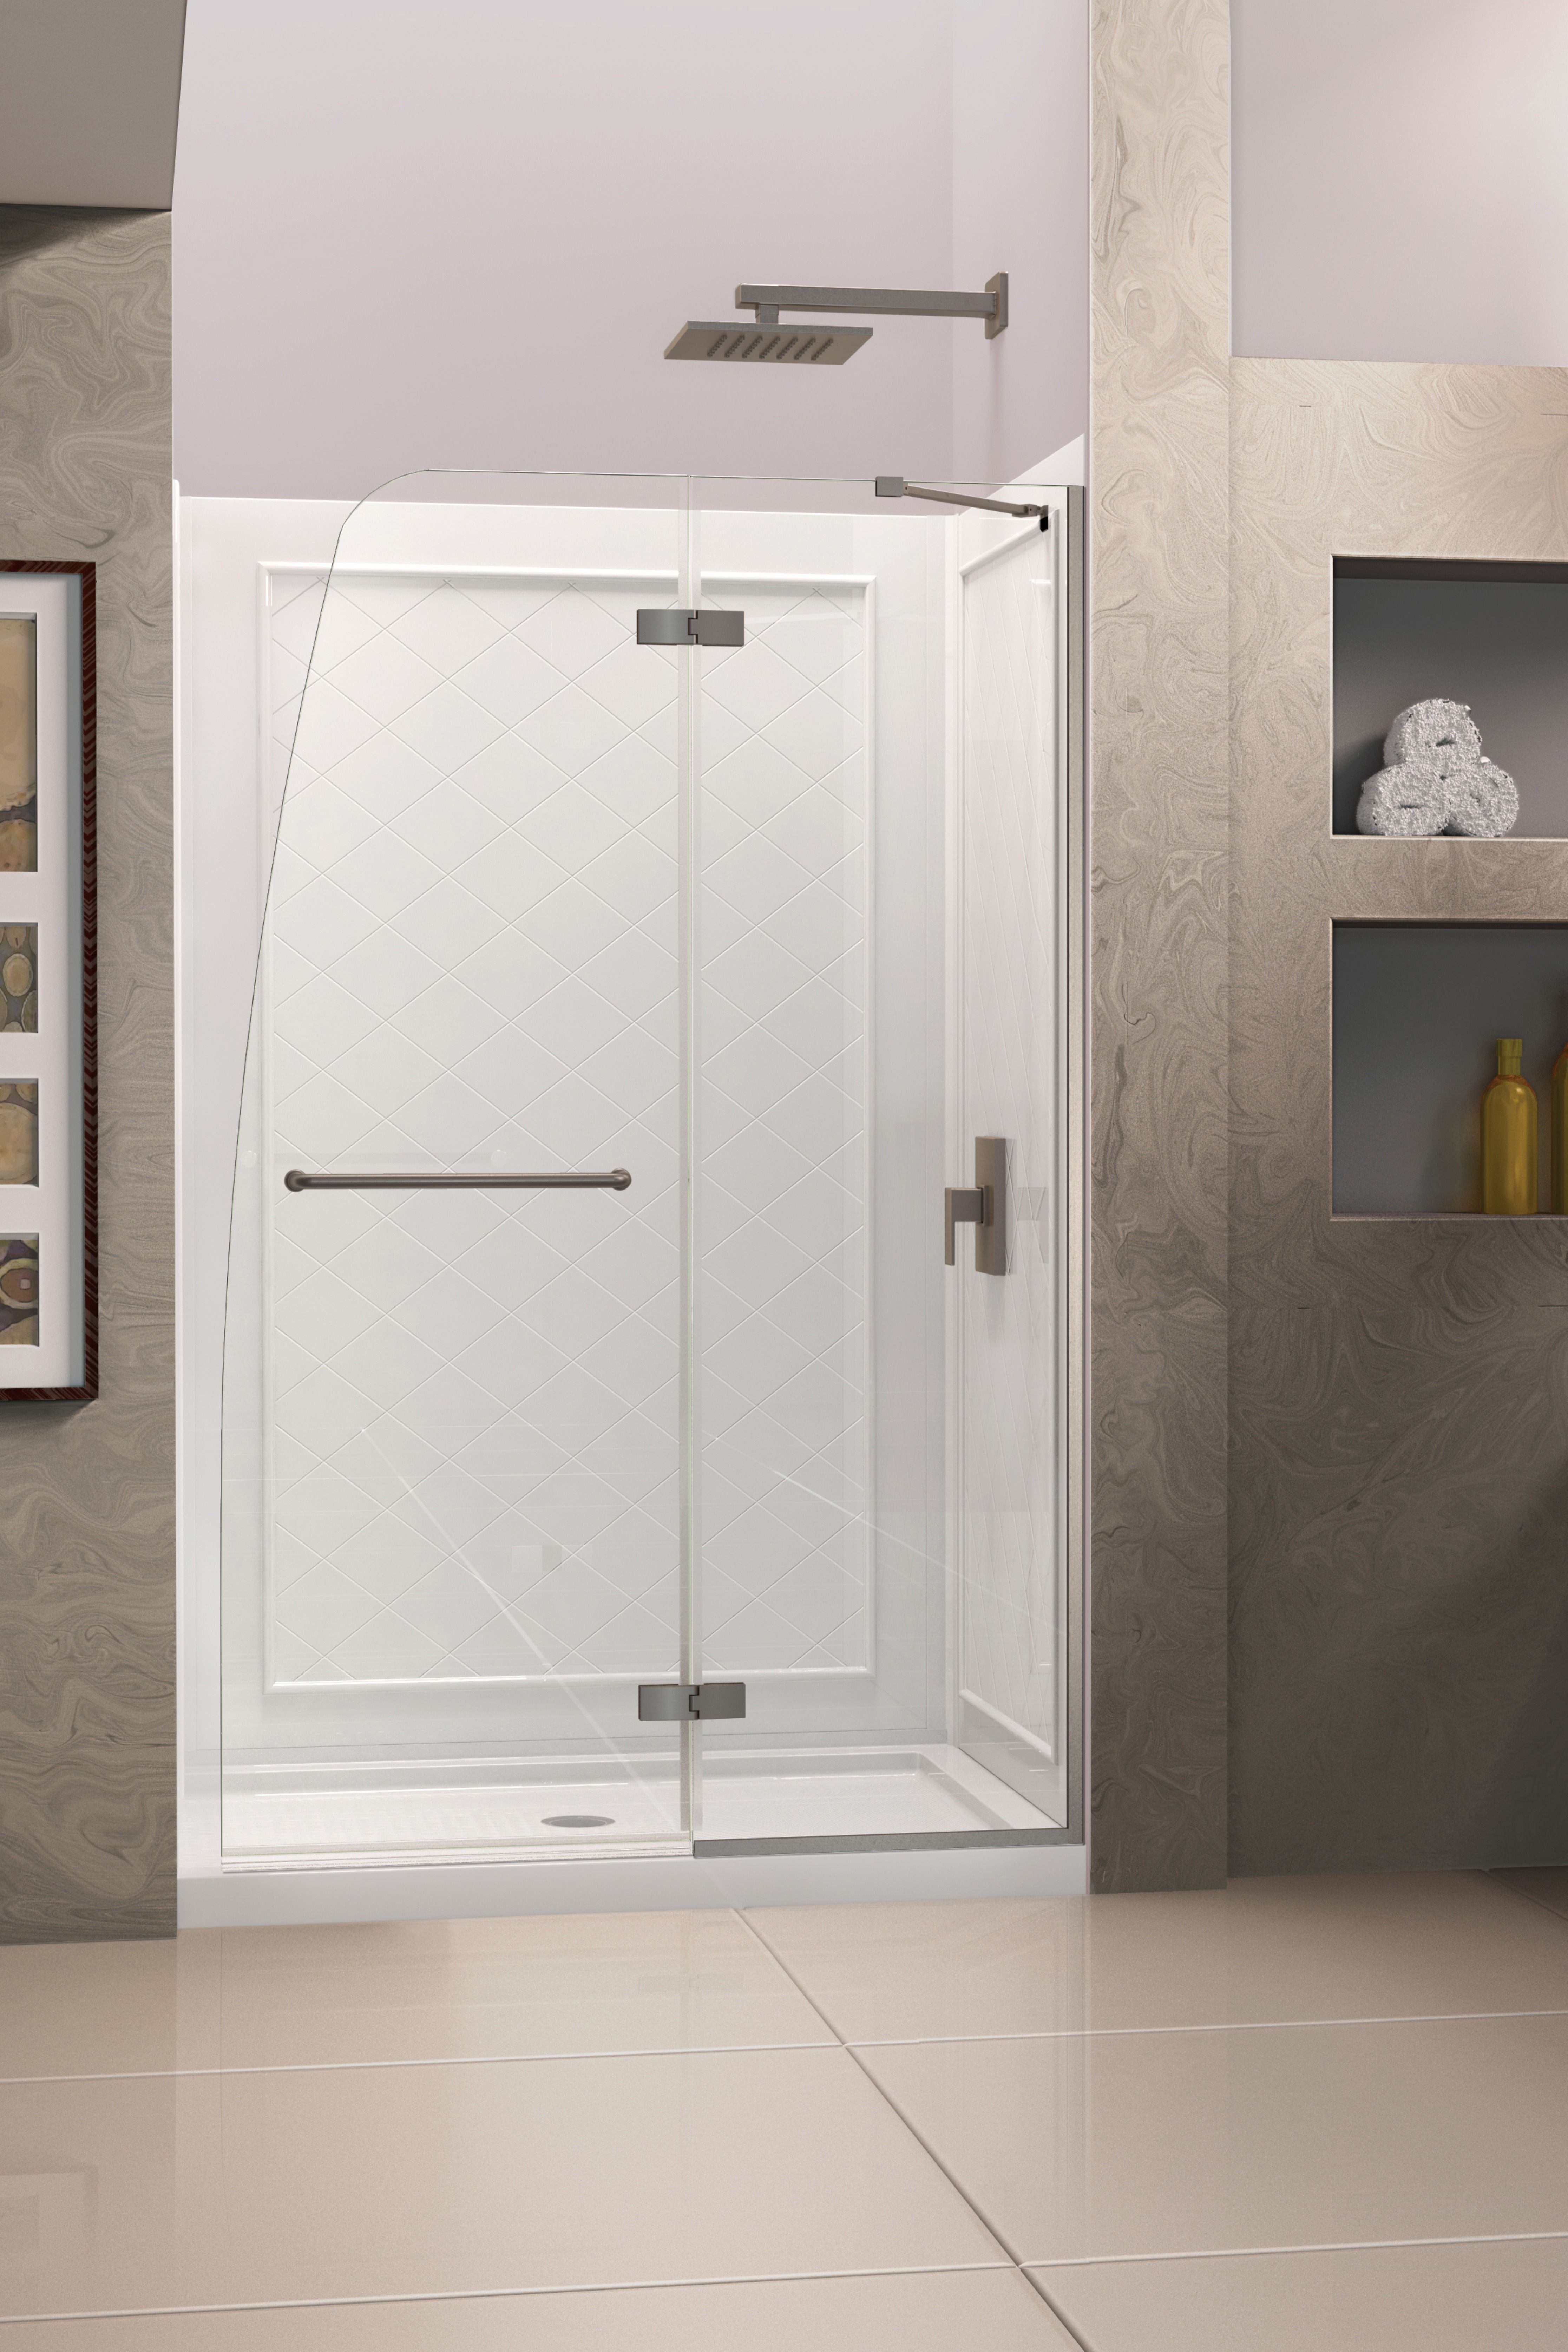 The Dreamline Aqua Ultra Shower Or Tub Door Will Be The